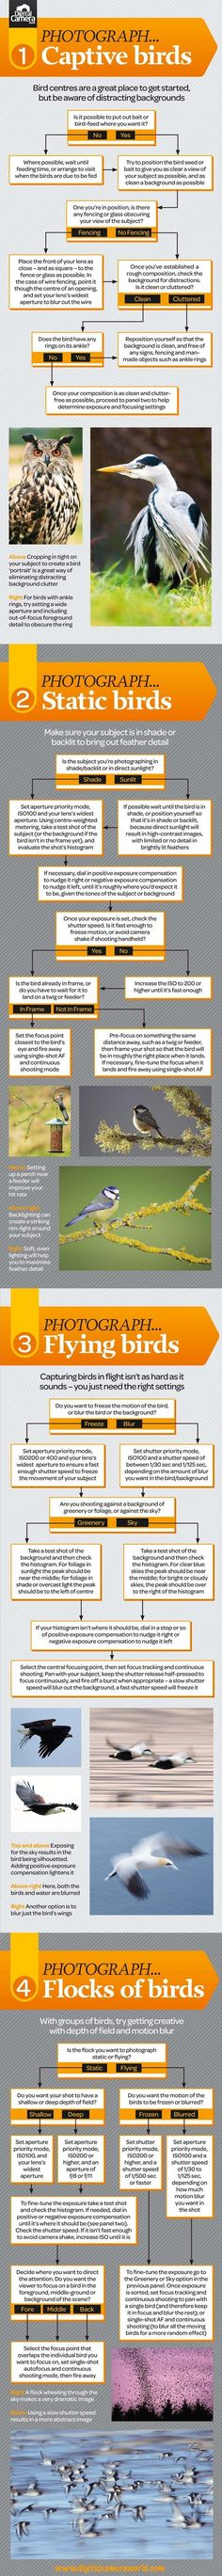 Bird photography cheat sheet, shows how to photograph birds in 4 common situations.